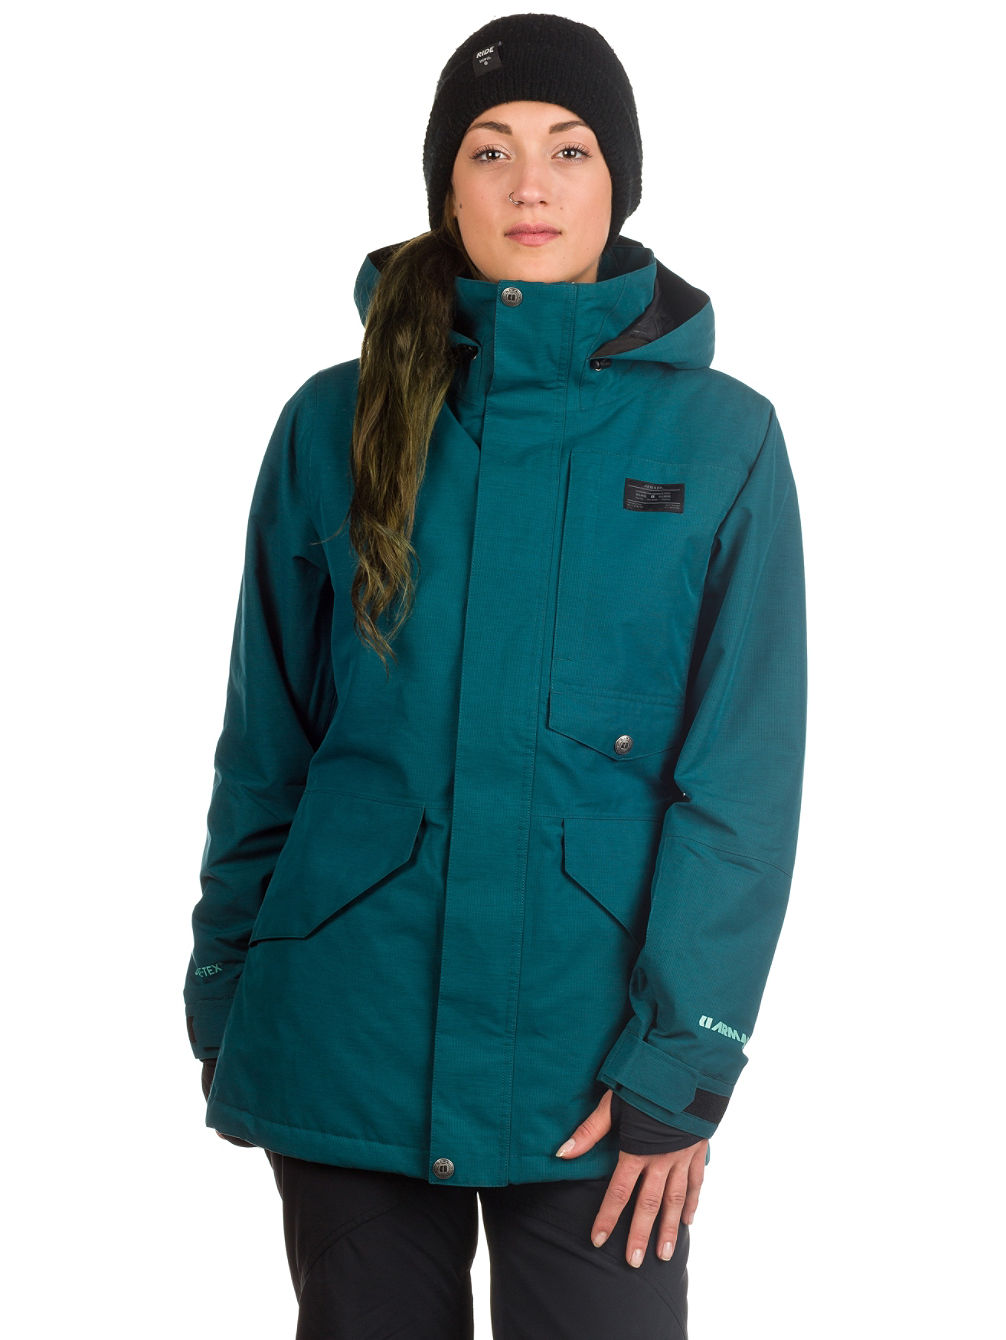 Kana Gore-Tex Insulated Jacket